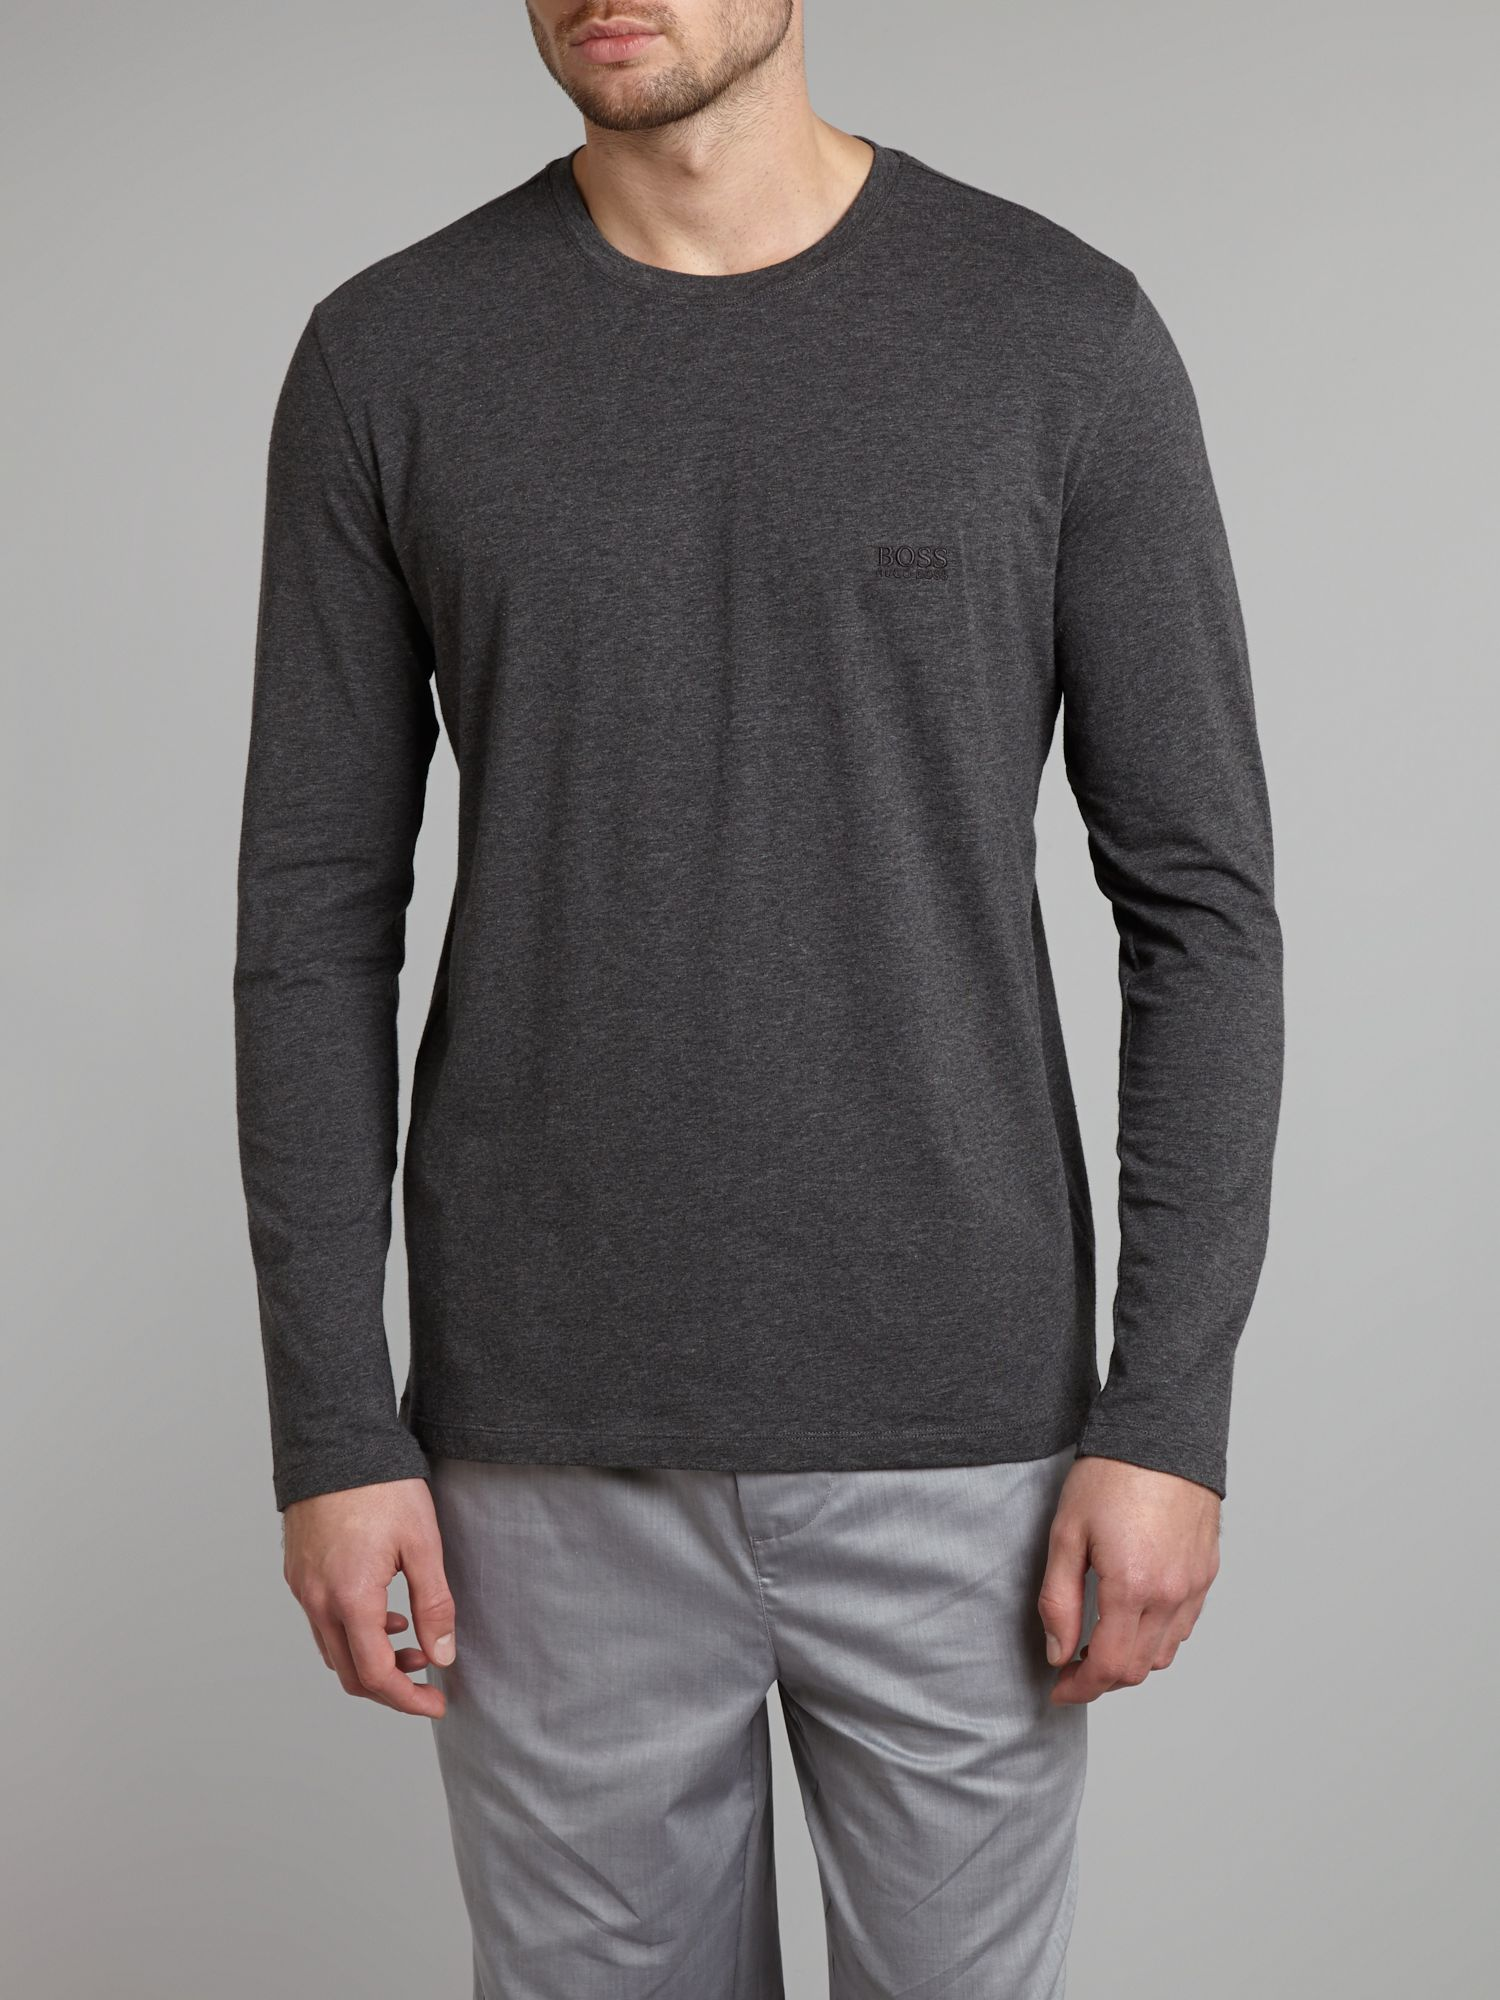 Long sleeved crew neck top